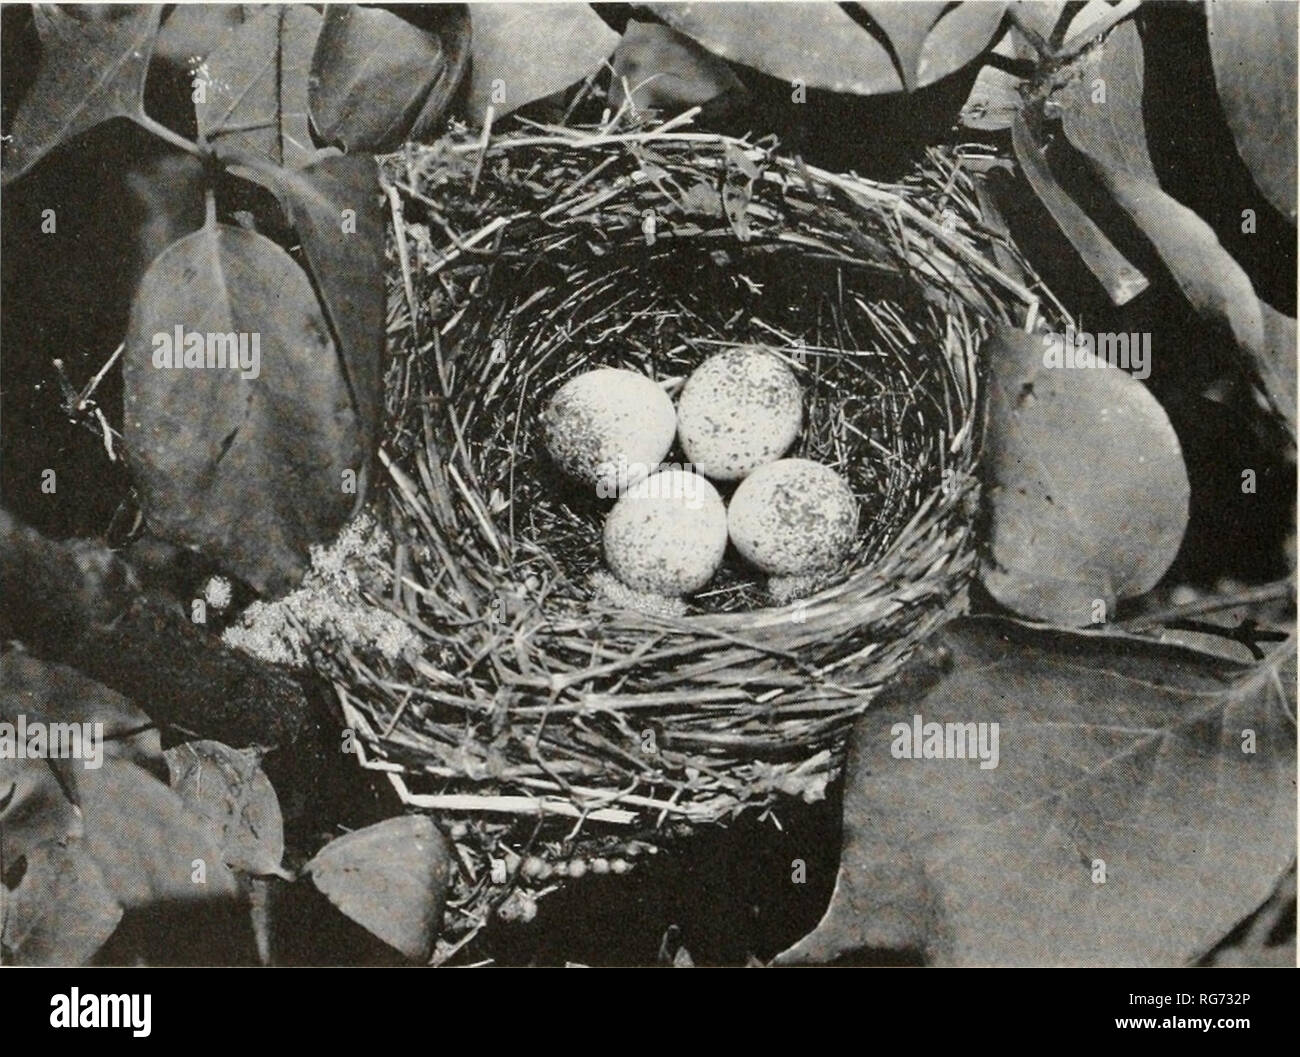 . Bulletin - United States National Museum. Science. Shasta County, Calif., June 22, 1944 Nest of Lazuli Bunting J. E. Patterson. Cowley County, Kans. W. Colvin Nest of Eastern painted bunting. Please note that these images are extracted from scanned page images that may have been digitally enhanced for readability - coloration and appearance of these illustrations may not perfectly resemble the original work.. United States National Museum; Smithsonian Institution; United States. Dept. of the Interior. Washington : Smithsonian Institution Press, [etc. ]; for sale by the Supt. of Docs. , U. S. - Stock Image